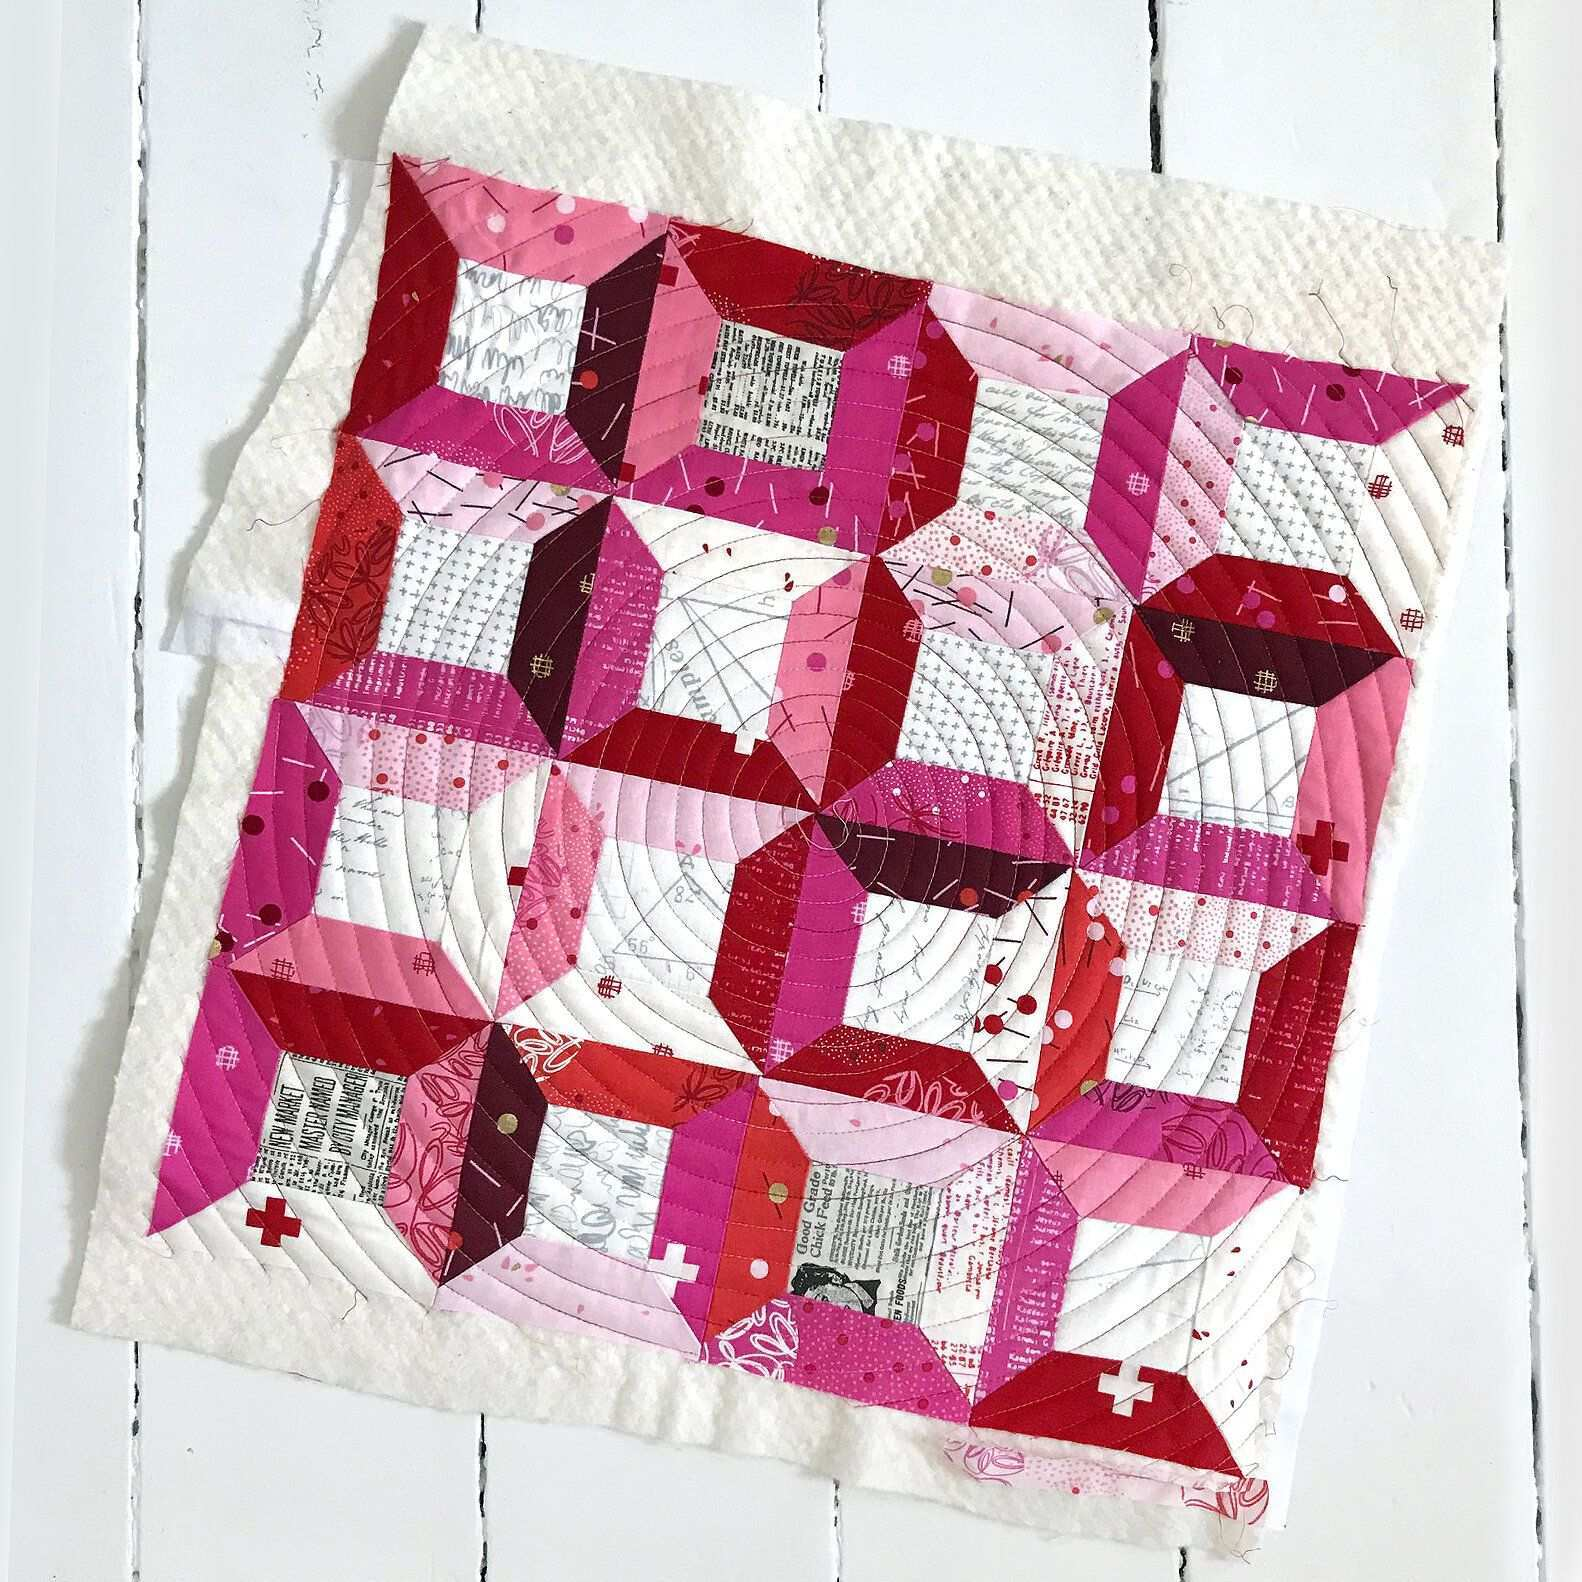 Sew The Town Square Pillow Free Block Pattern For Block 11 Blockheads 2020 In 2020